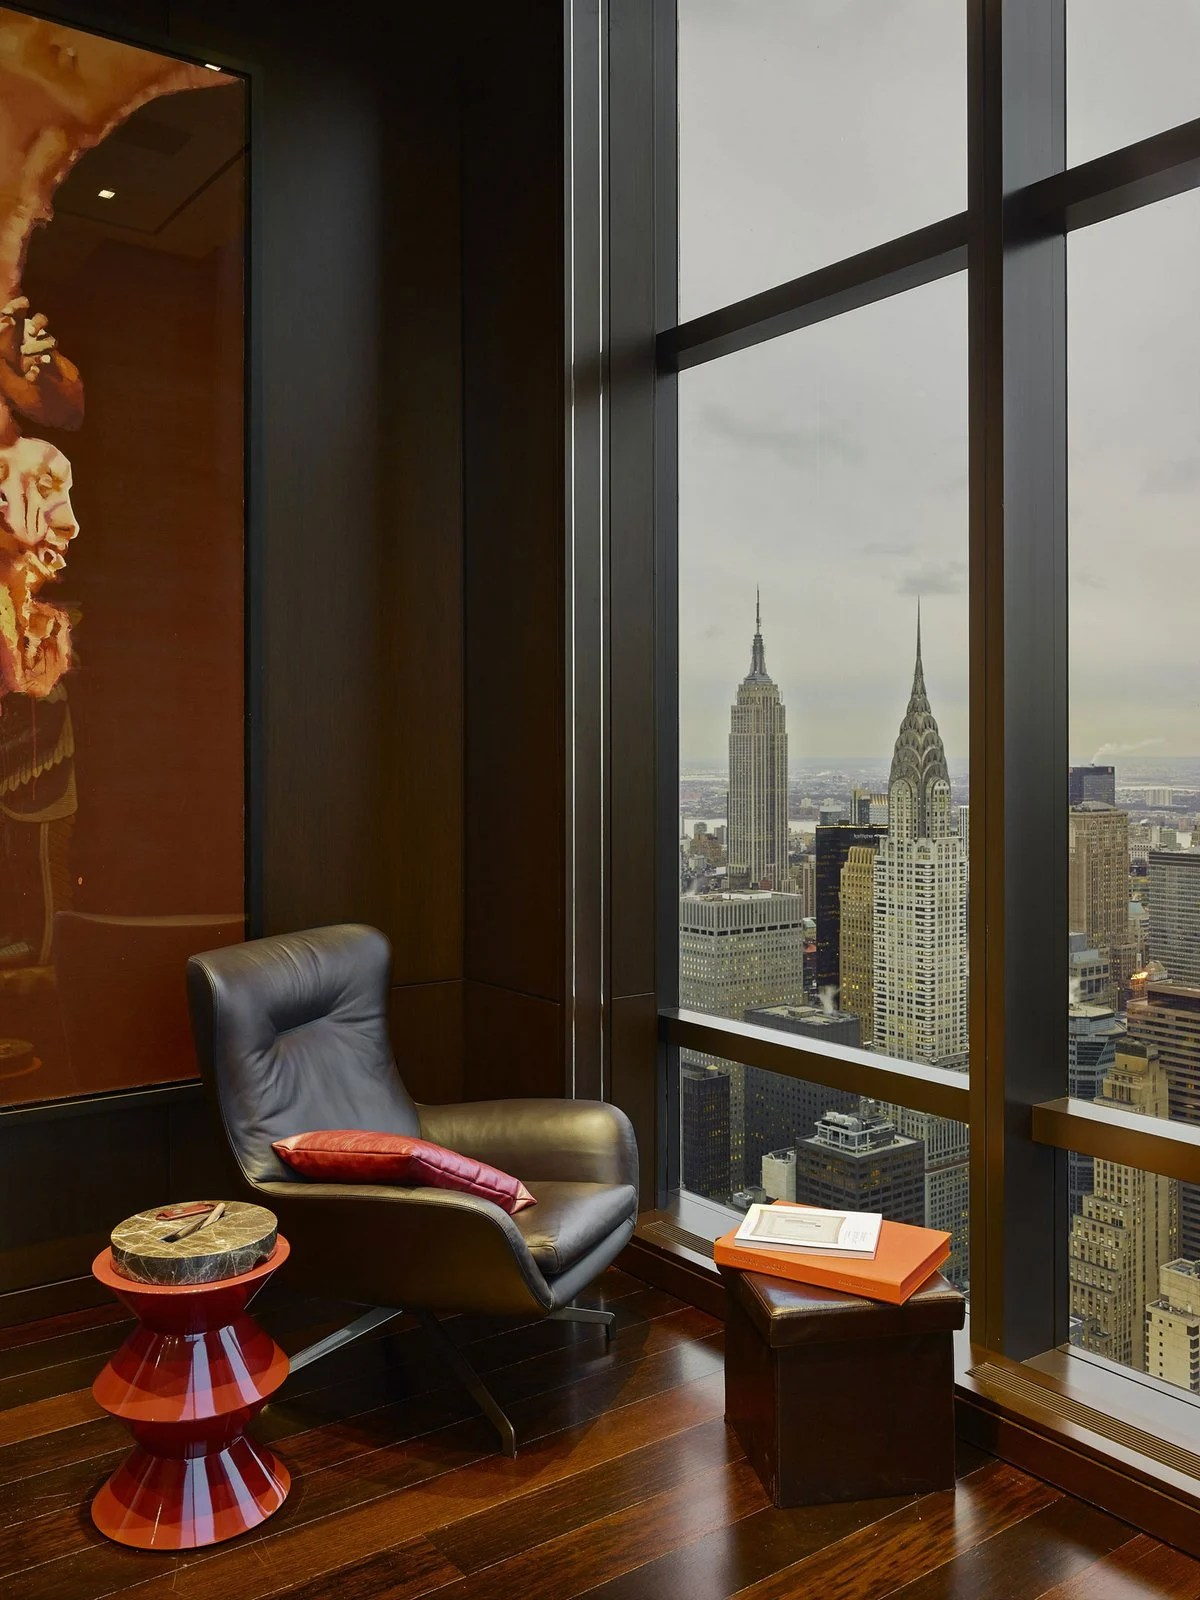 Take a look inside one of the largest luxury apartment in